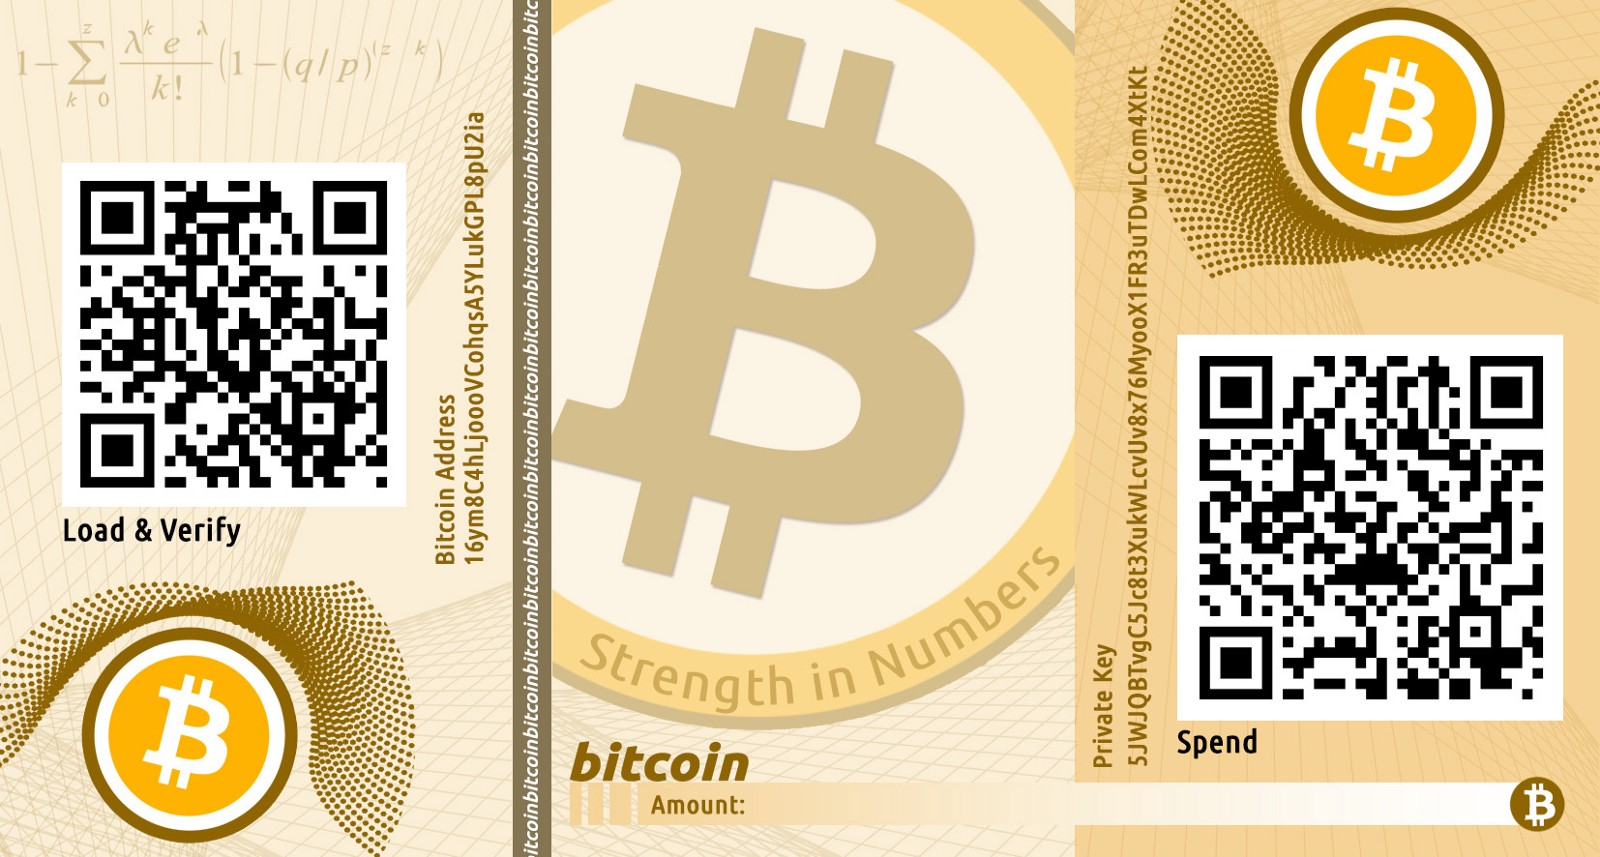 Guide to Paper Wallets 2019 and Beyond for Crypto Investors